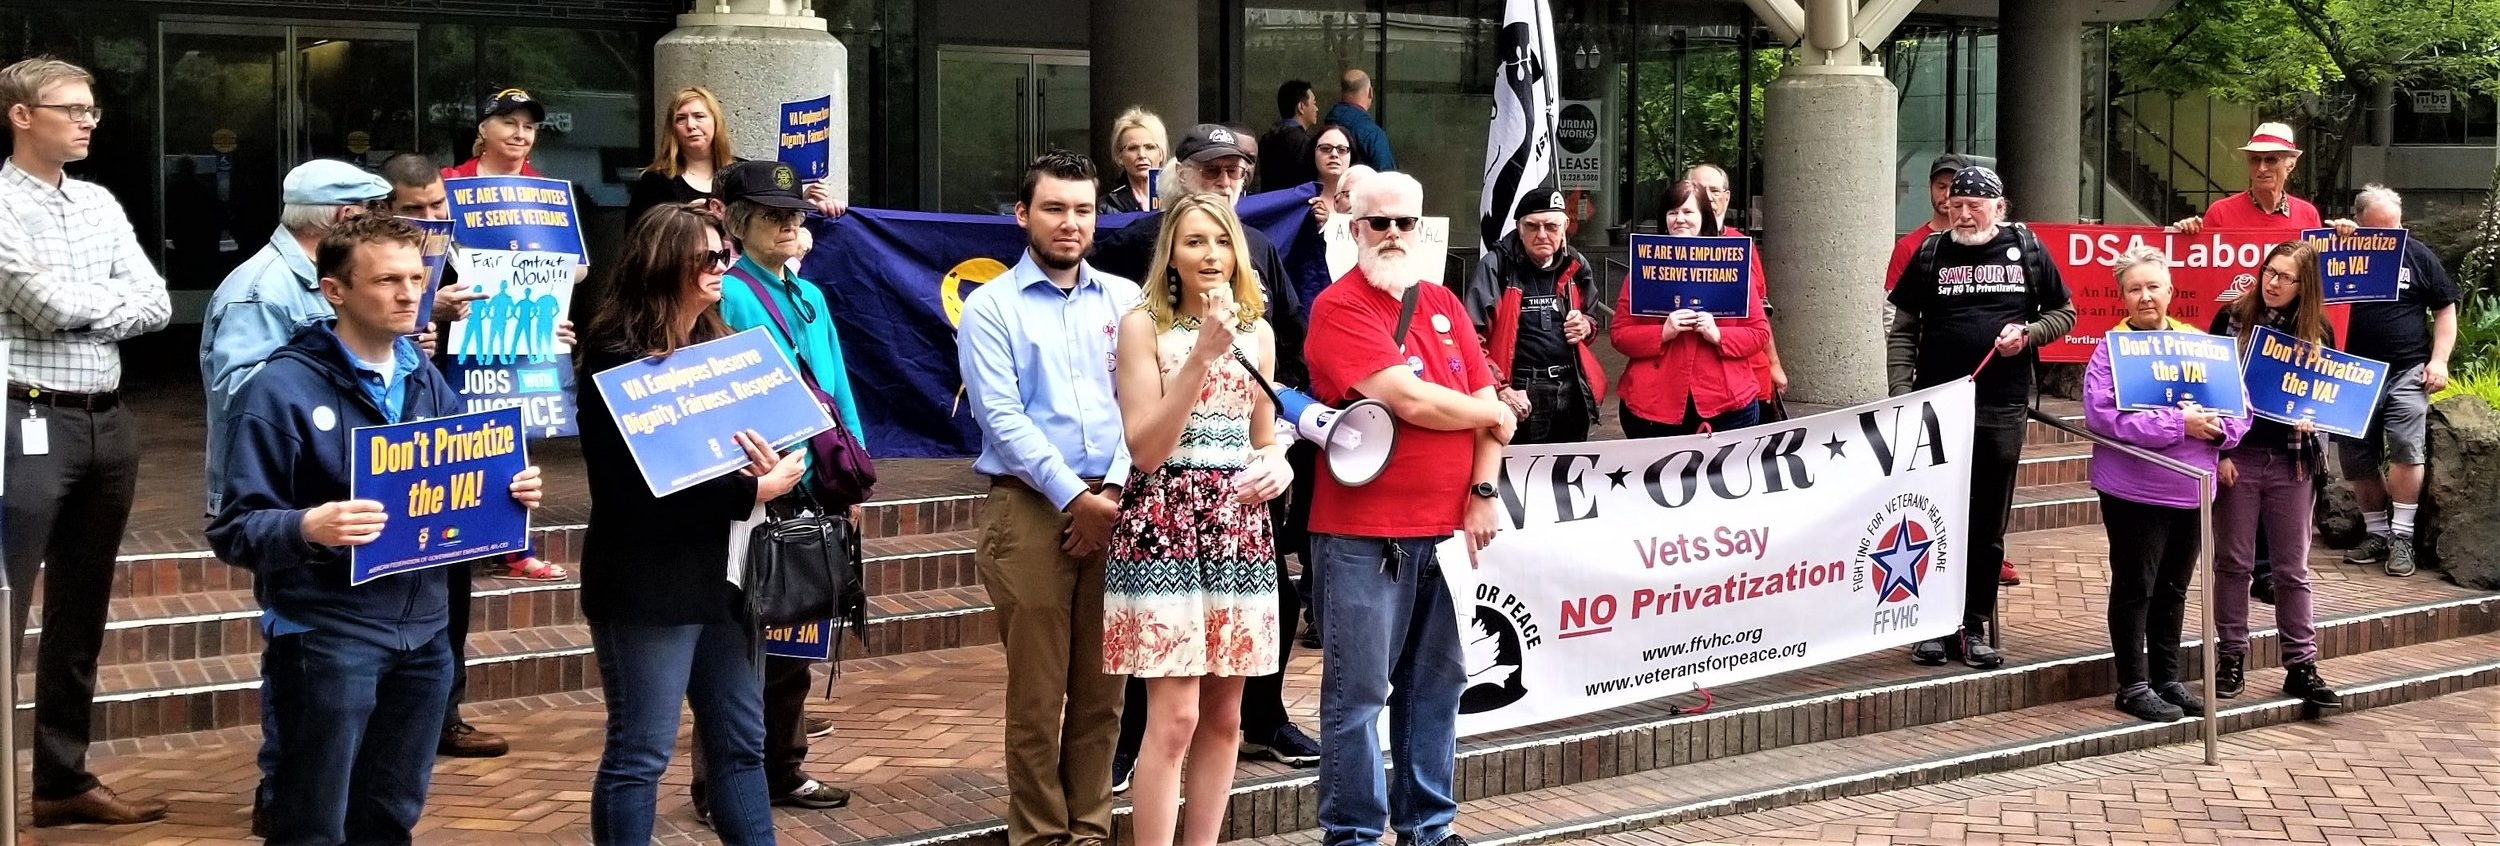 """Paige Kreisman, the first woman to serve as an Indirect Fire Infantryman in the US Army, now a disabled veteran, speaks at the Portland """"Save Our VA"""" rally in support of the VA workers union. (2019)"""